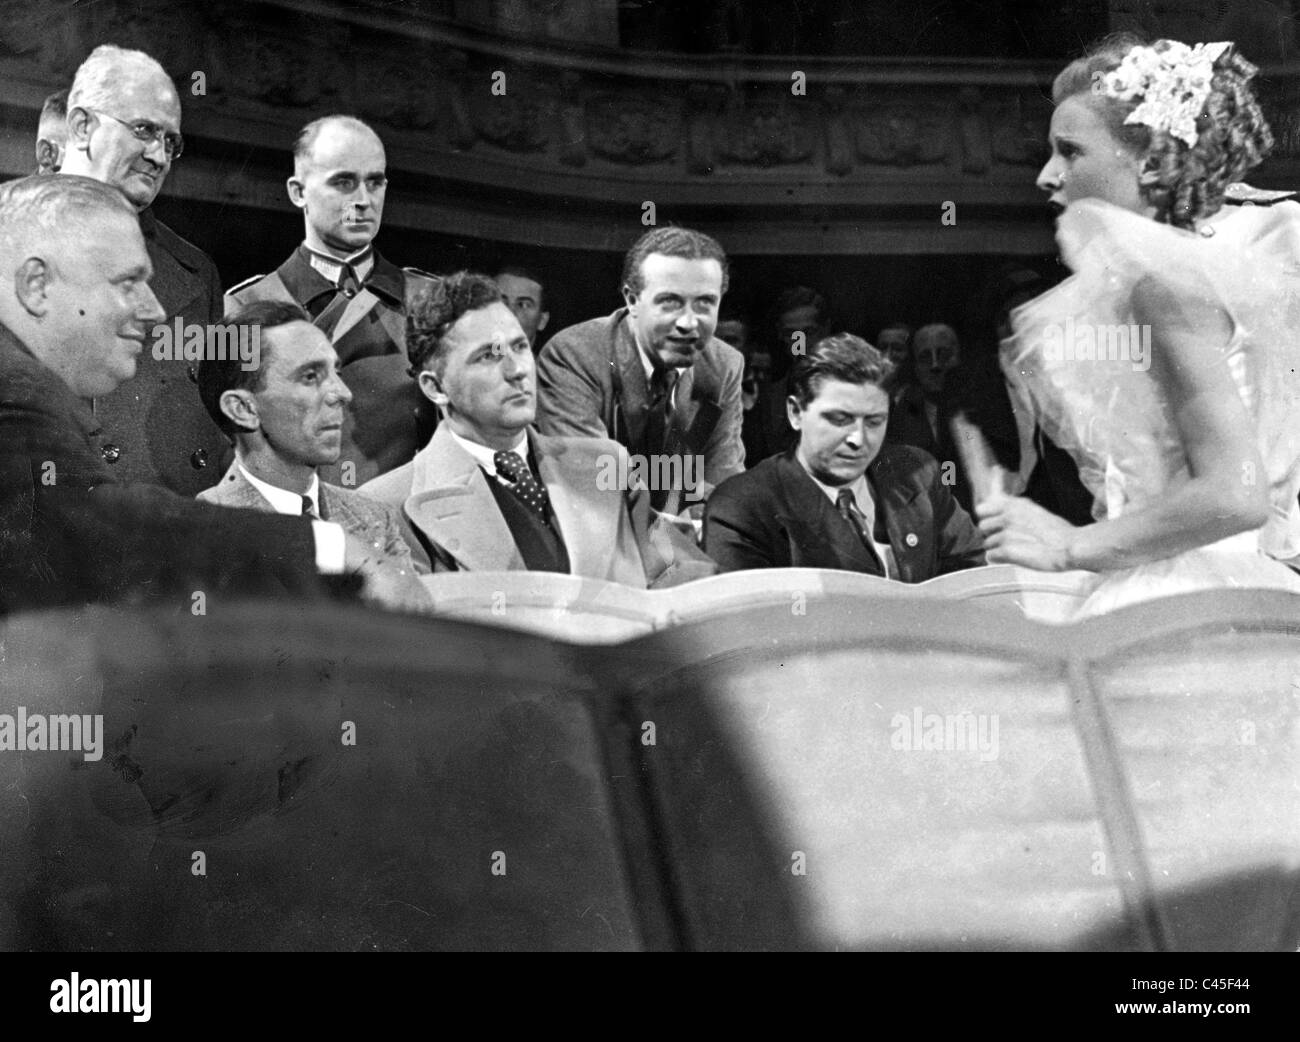 Goebbels at a test filming at UFA, 1935 - Stock Image